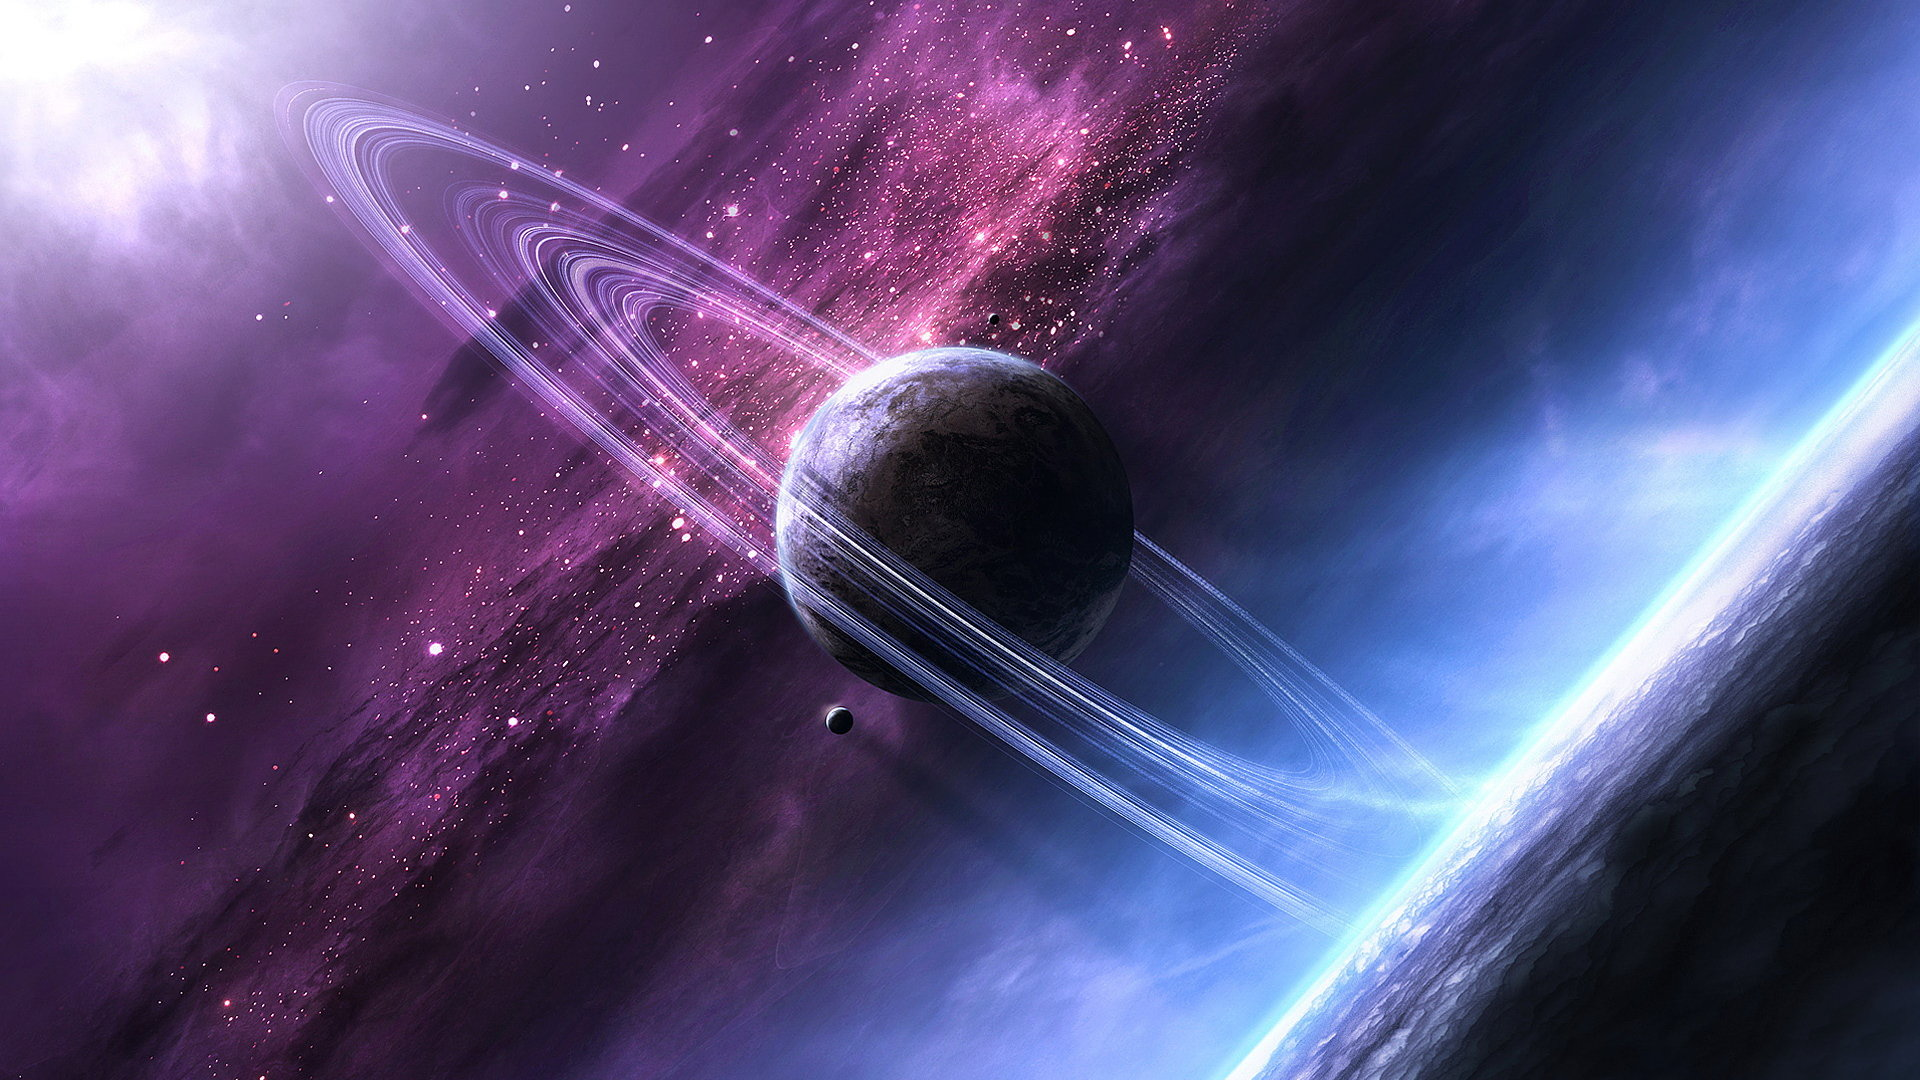 Download hd 1080p Planetary Ring desktop wallpaper ID:256389 for free